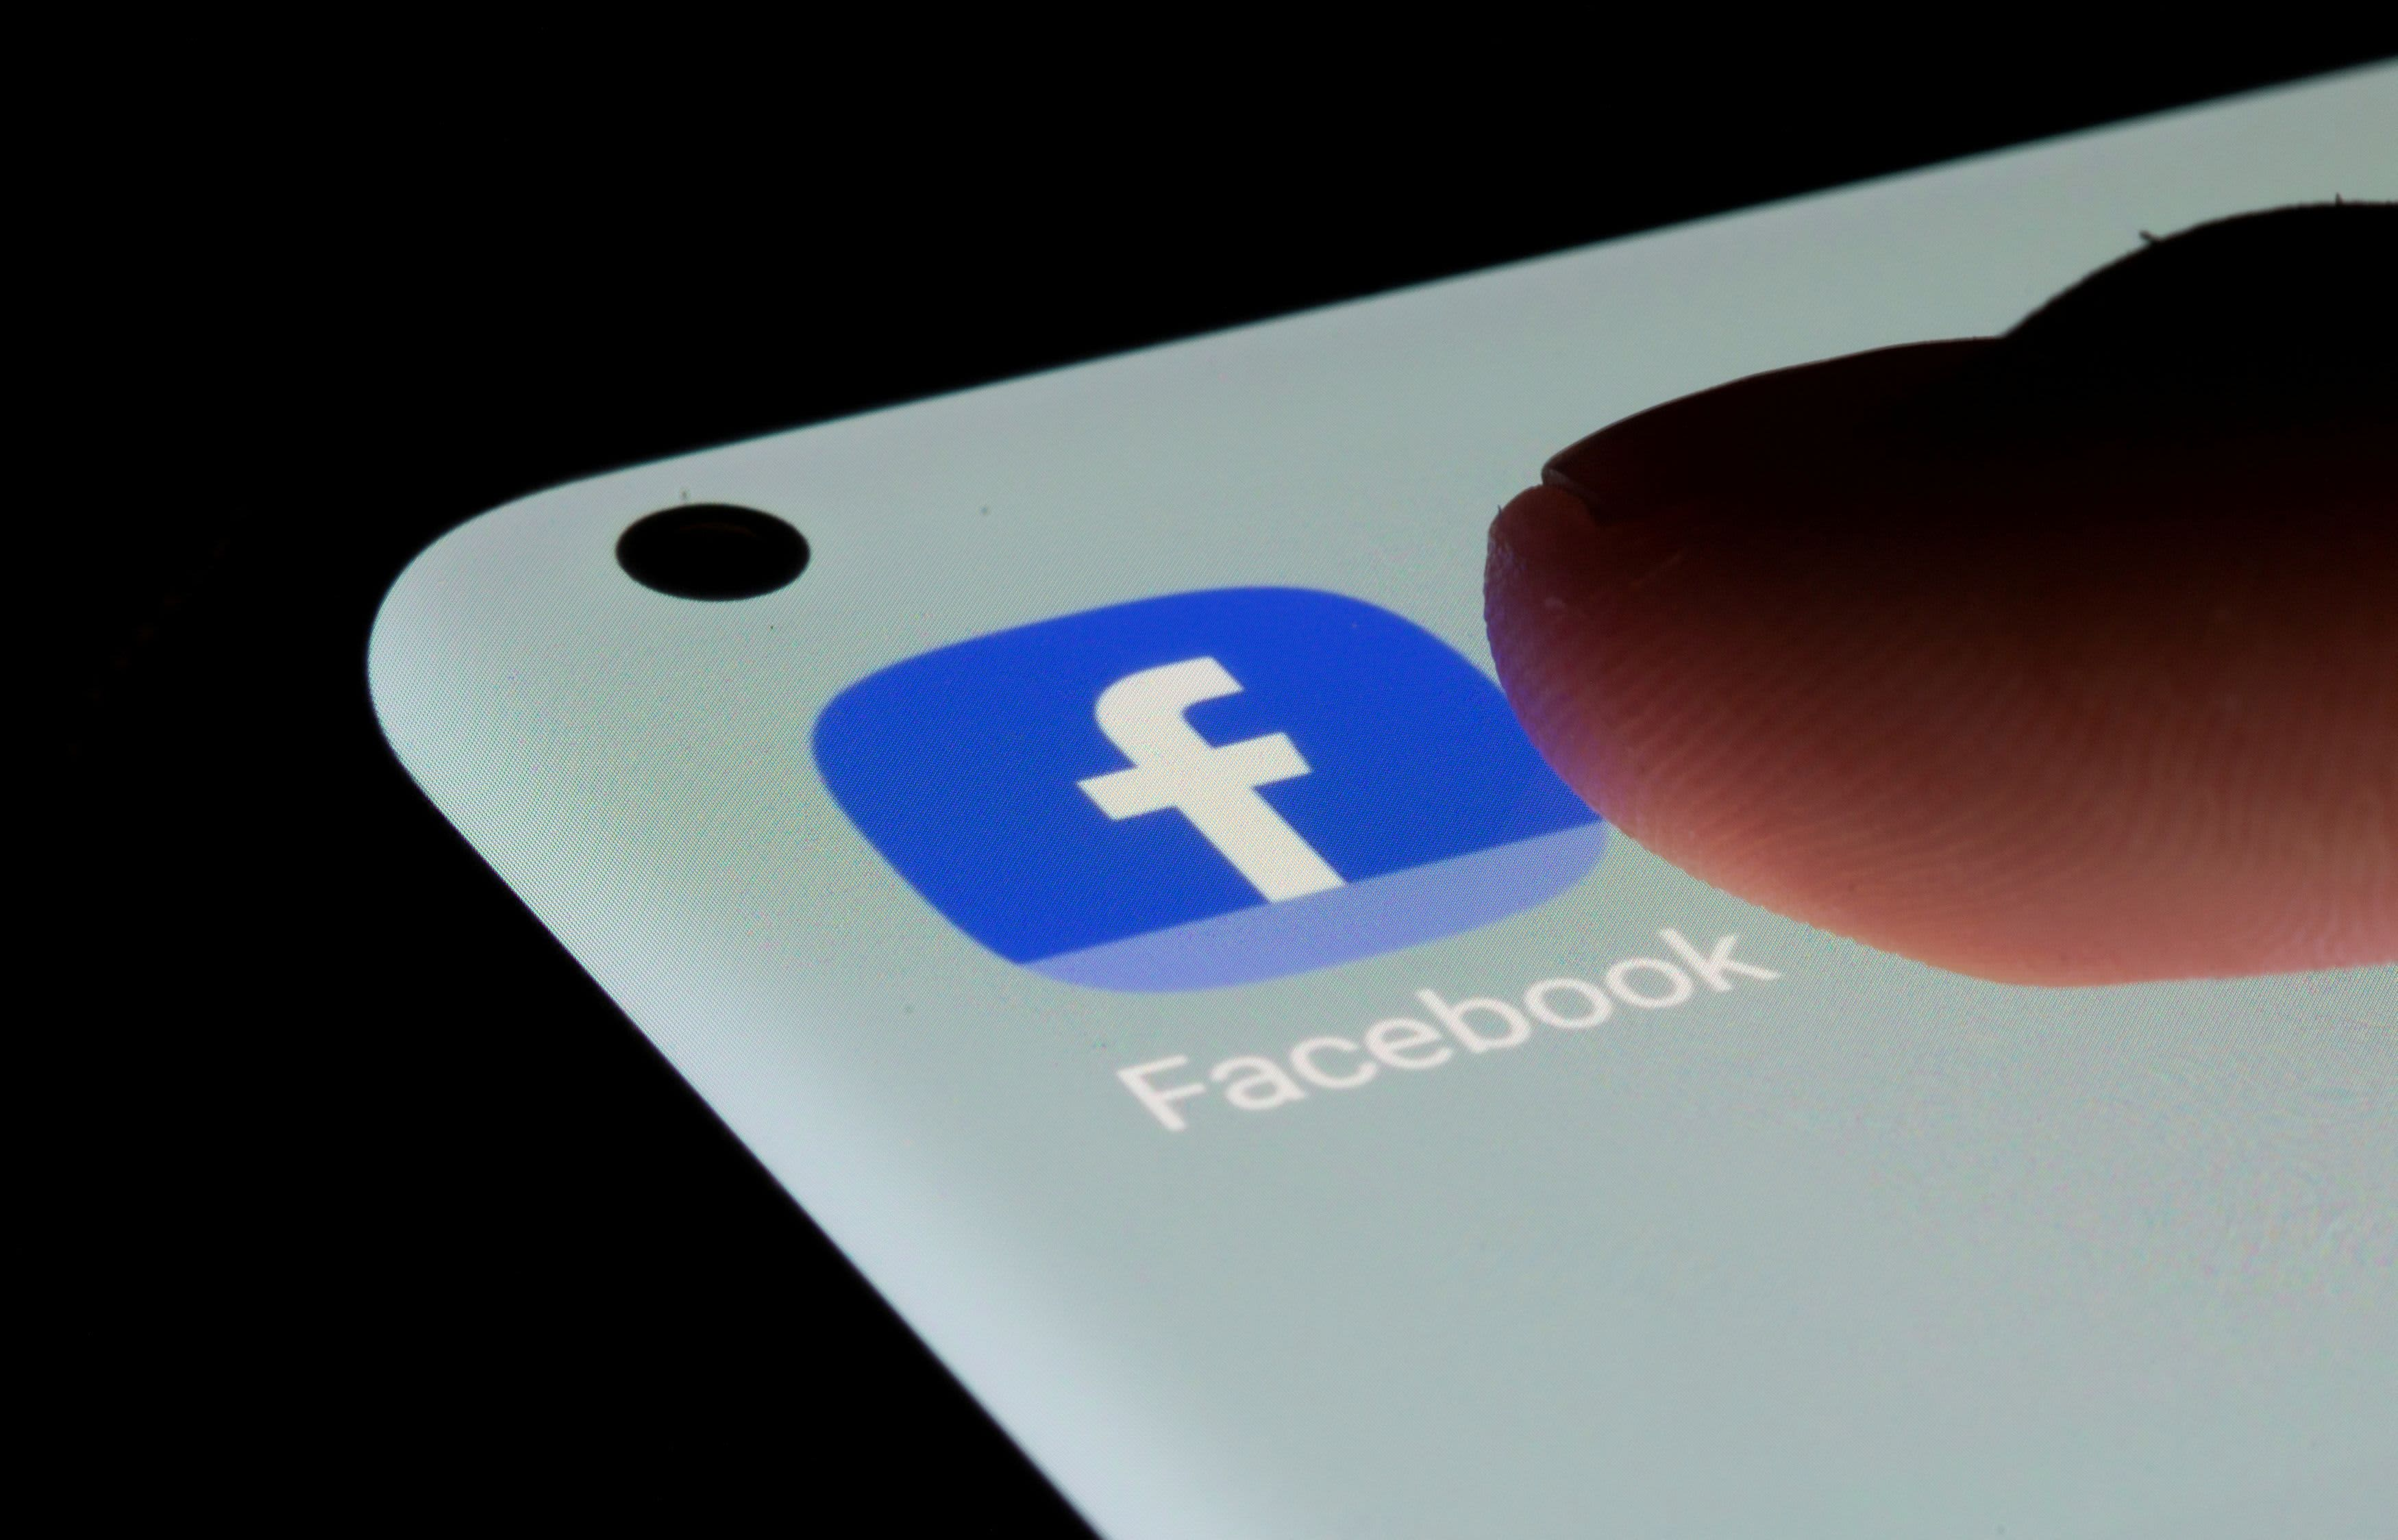 Facebook says it underreported ad performance due to Apple's iPhone privacy update - CNBC